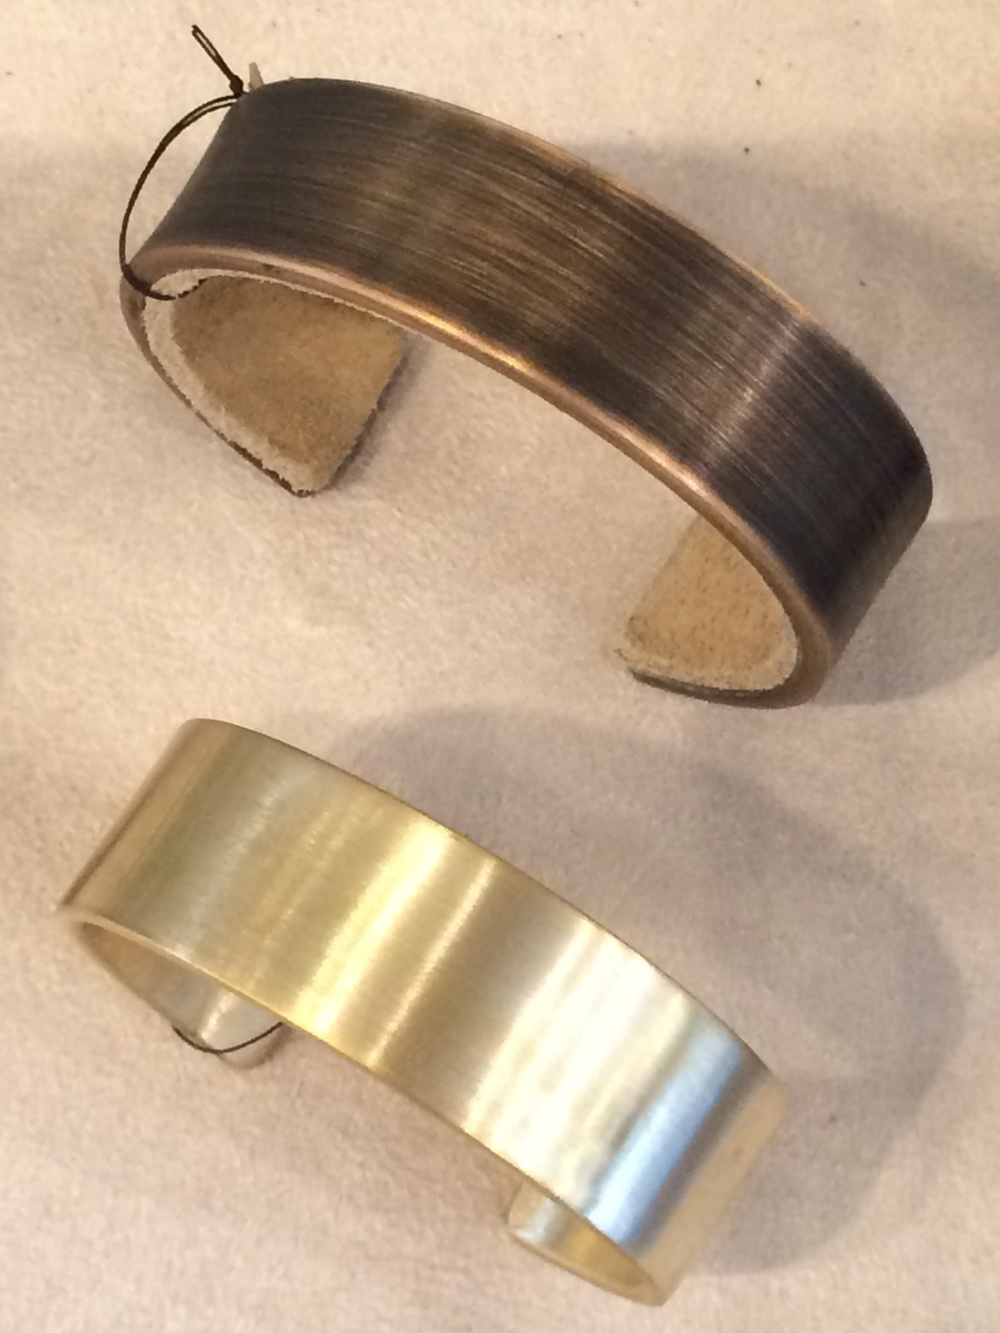 Bronze Cuffs by L.A. arcitects Marmol Radziner.